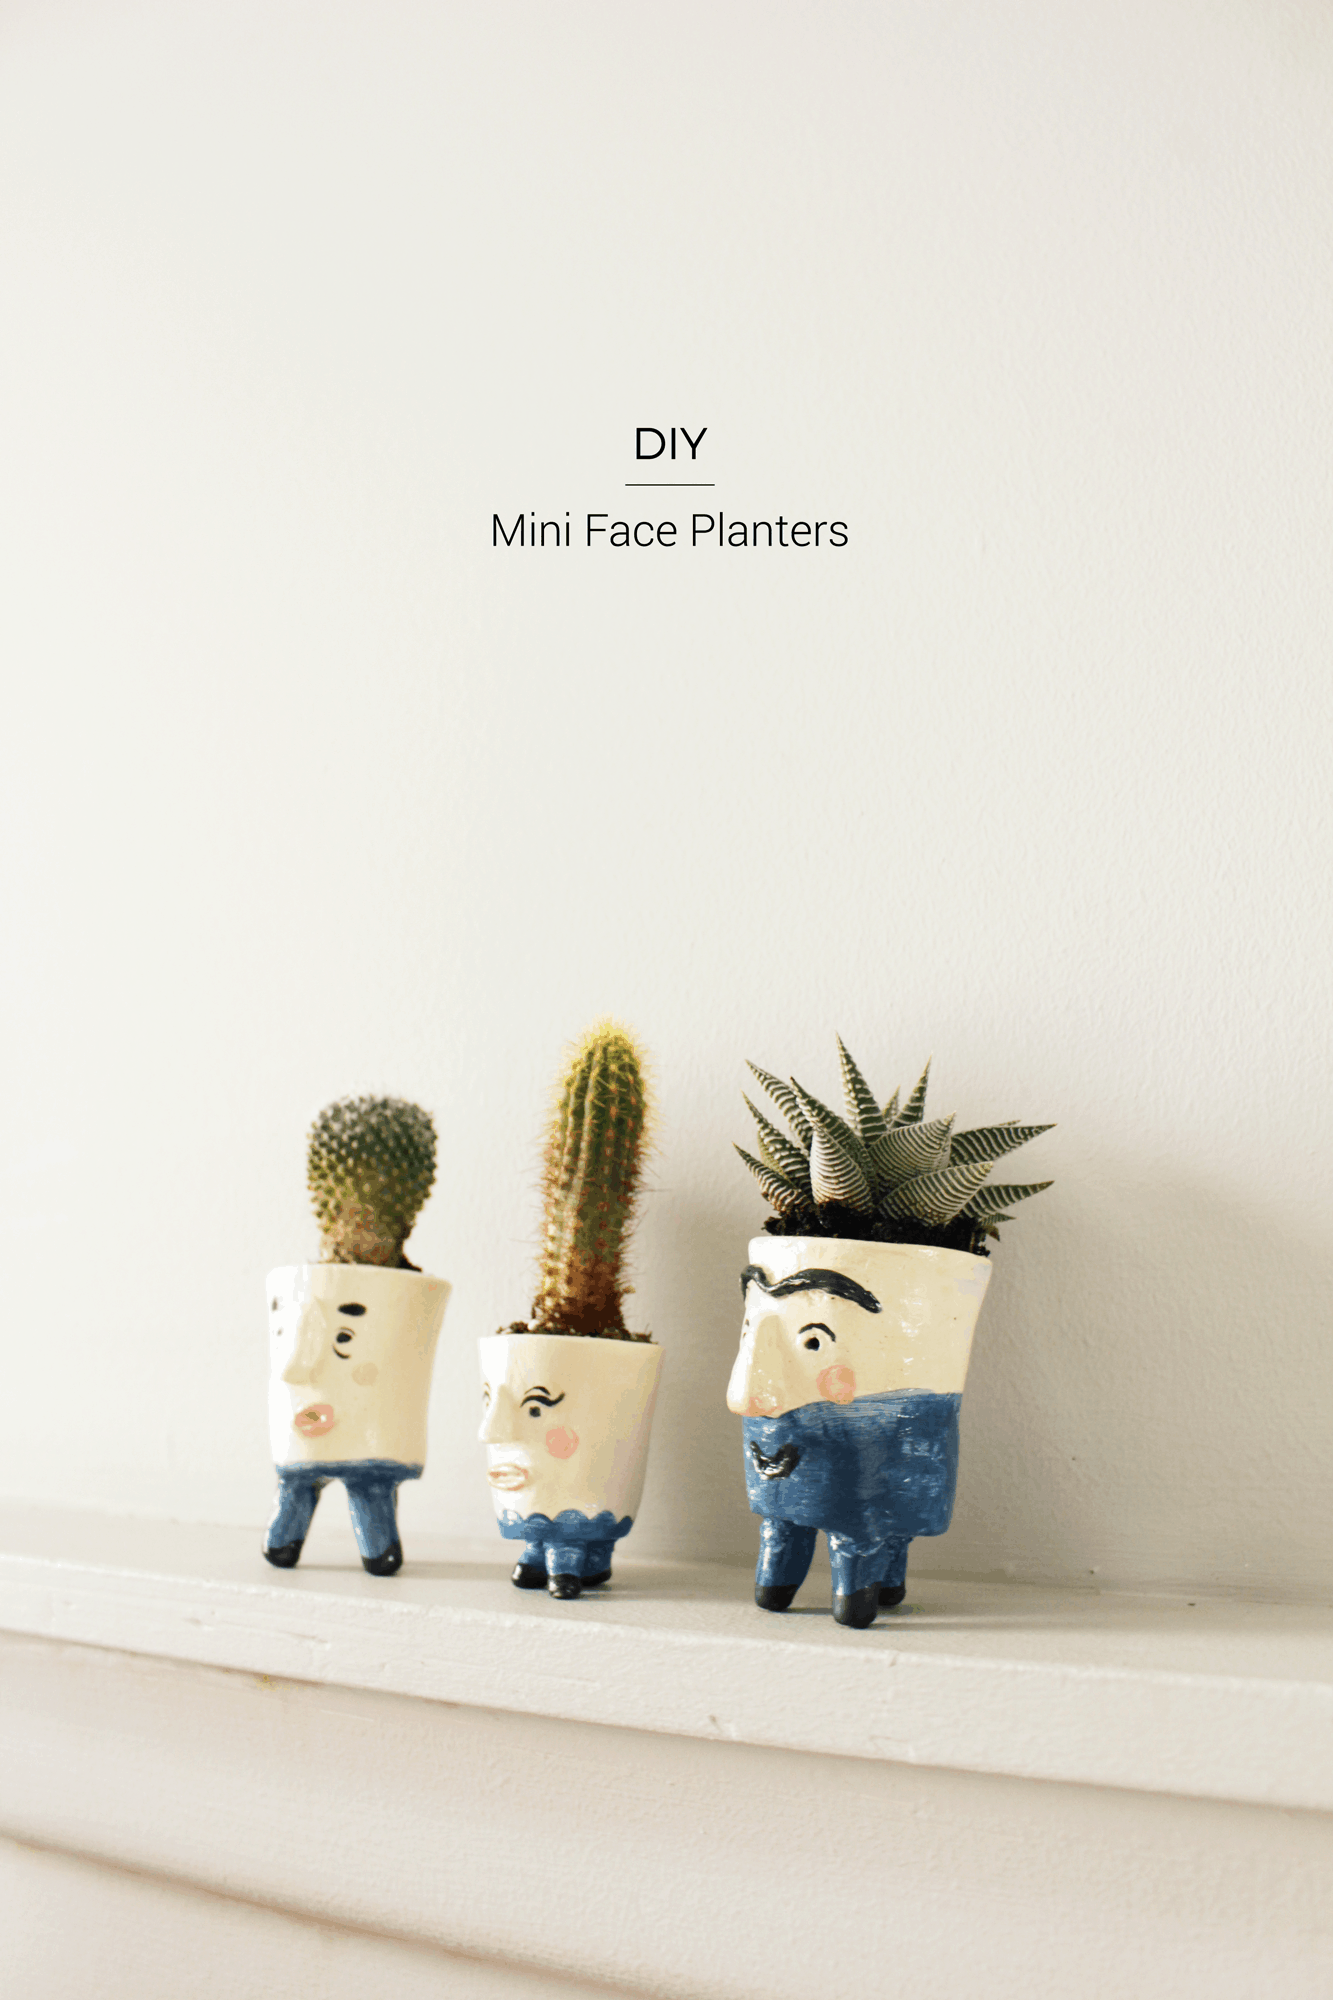 DIY Mini Face Planters